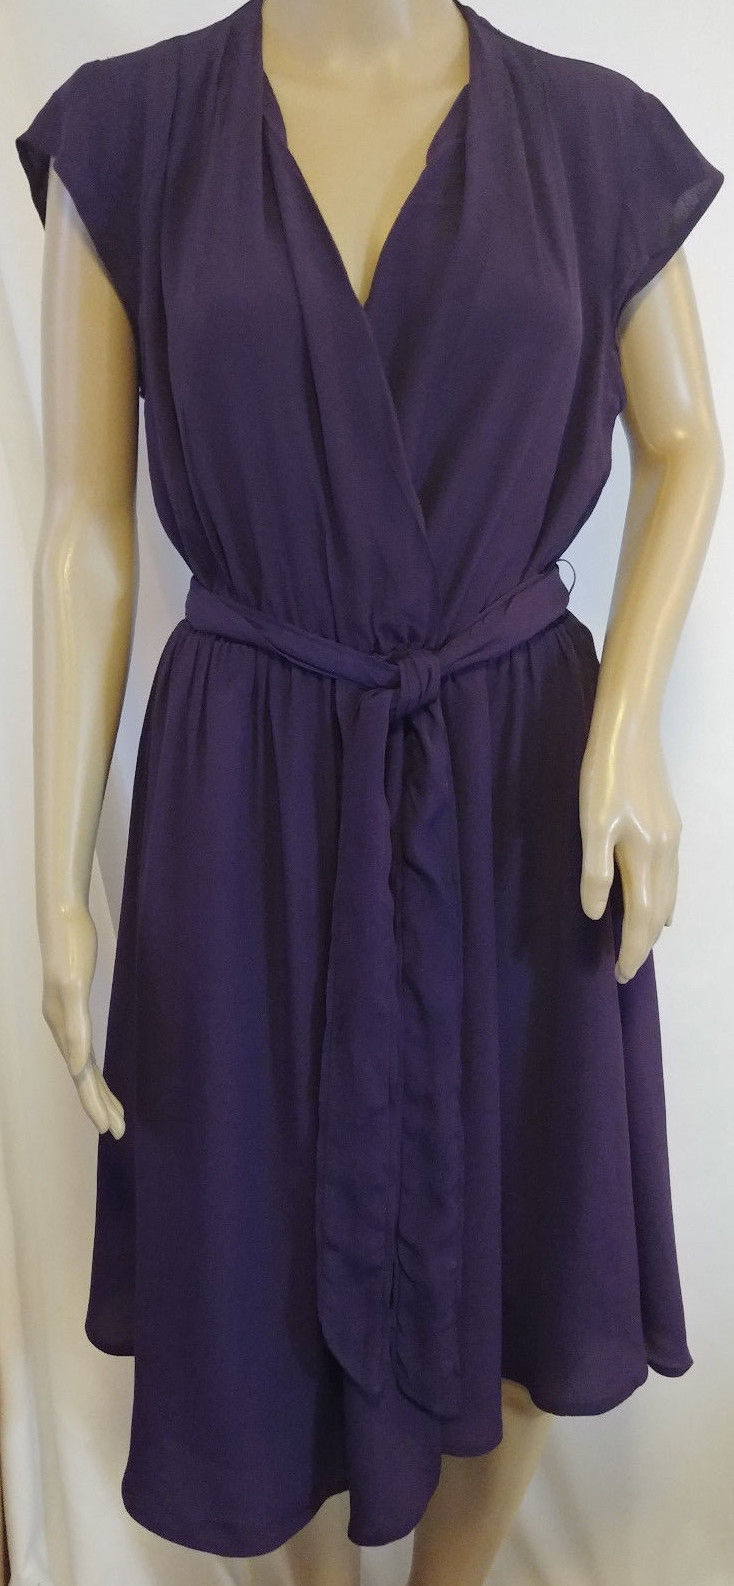 Anthropologie Maeve Noronha Wrap Dress Size Small Purple Crepe Tie Waist